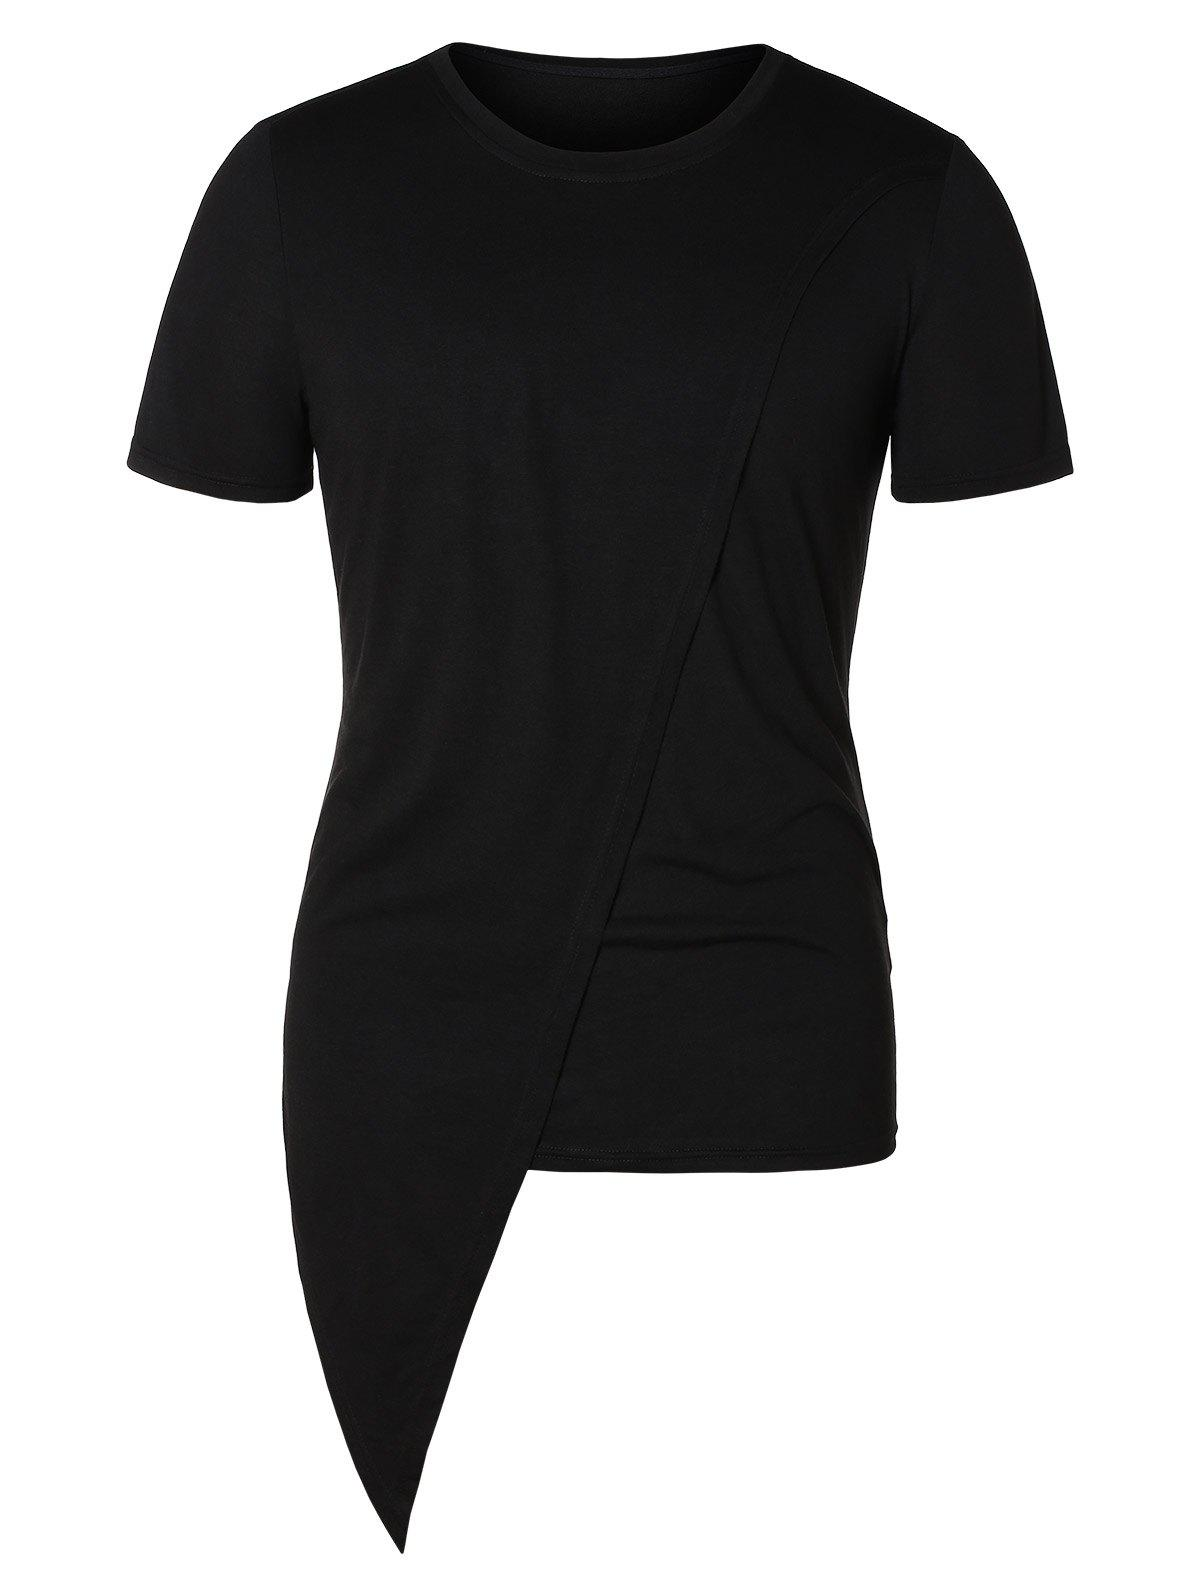 Buy Asymmetric Round Neck Short Sleeve Top